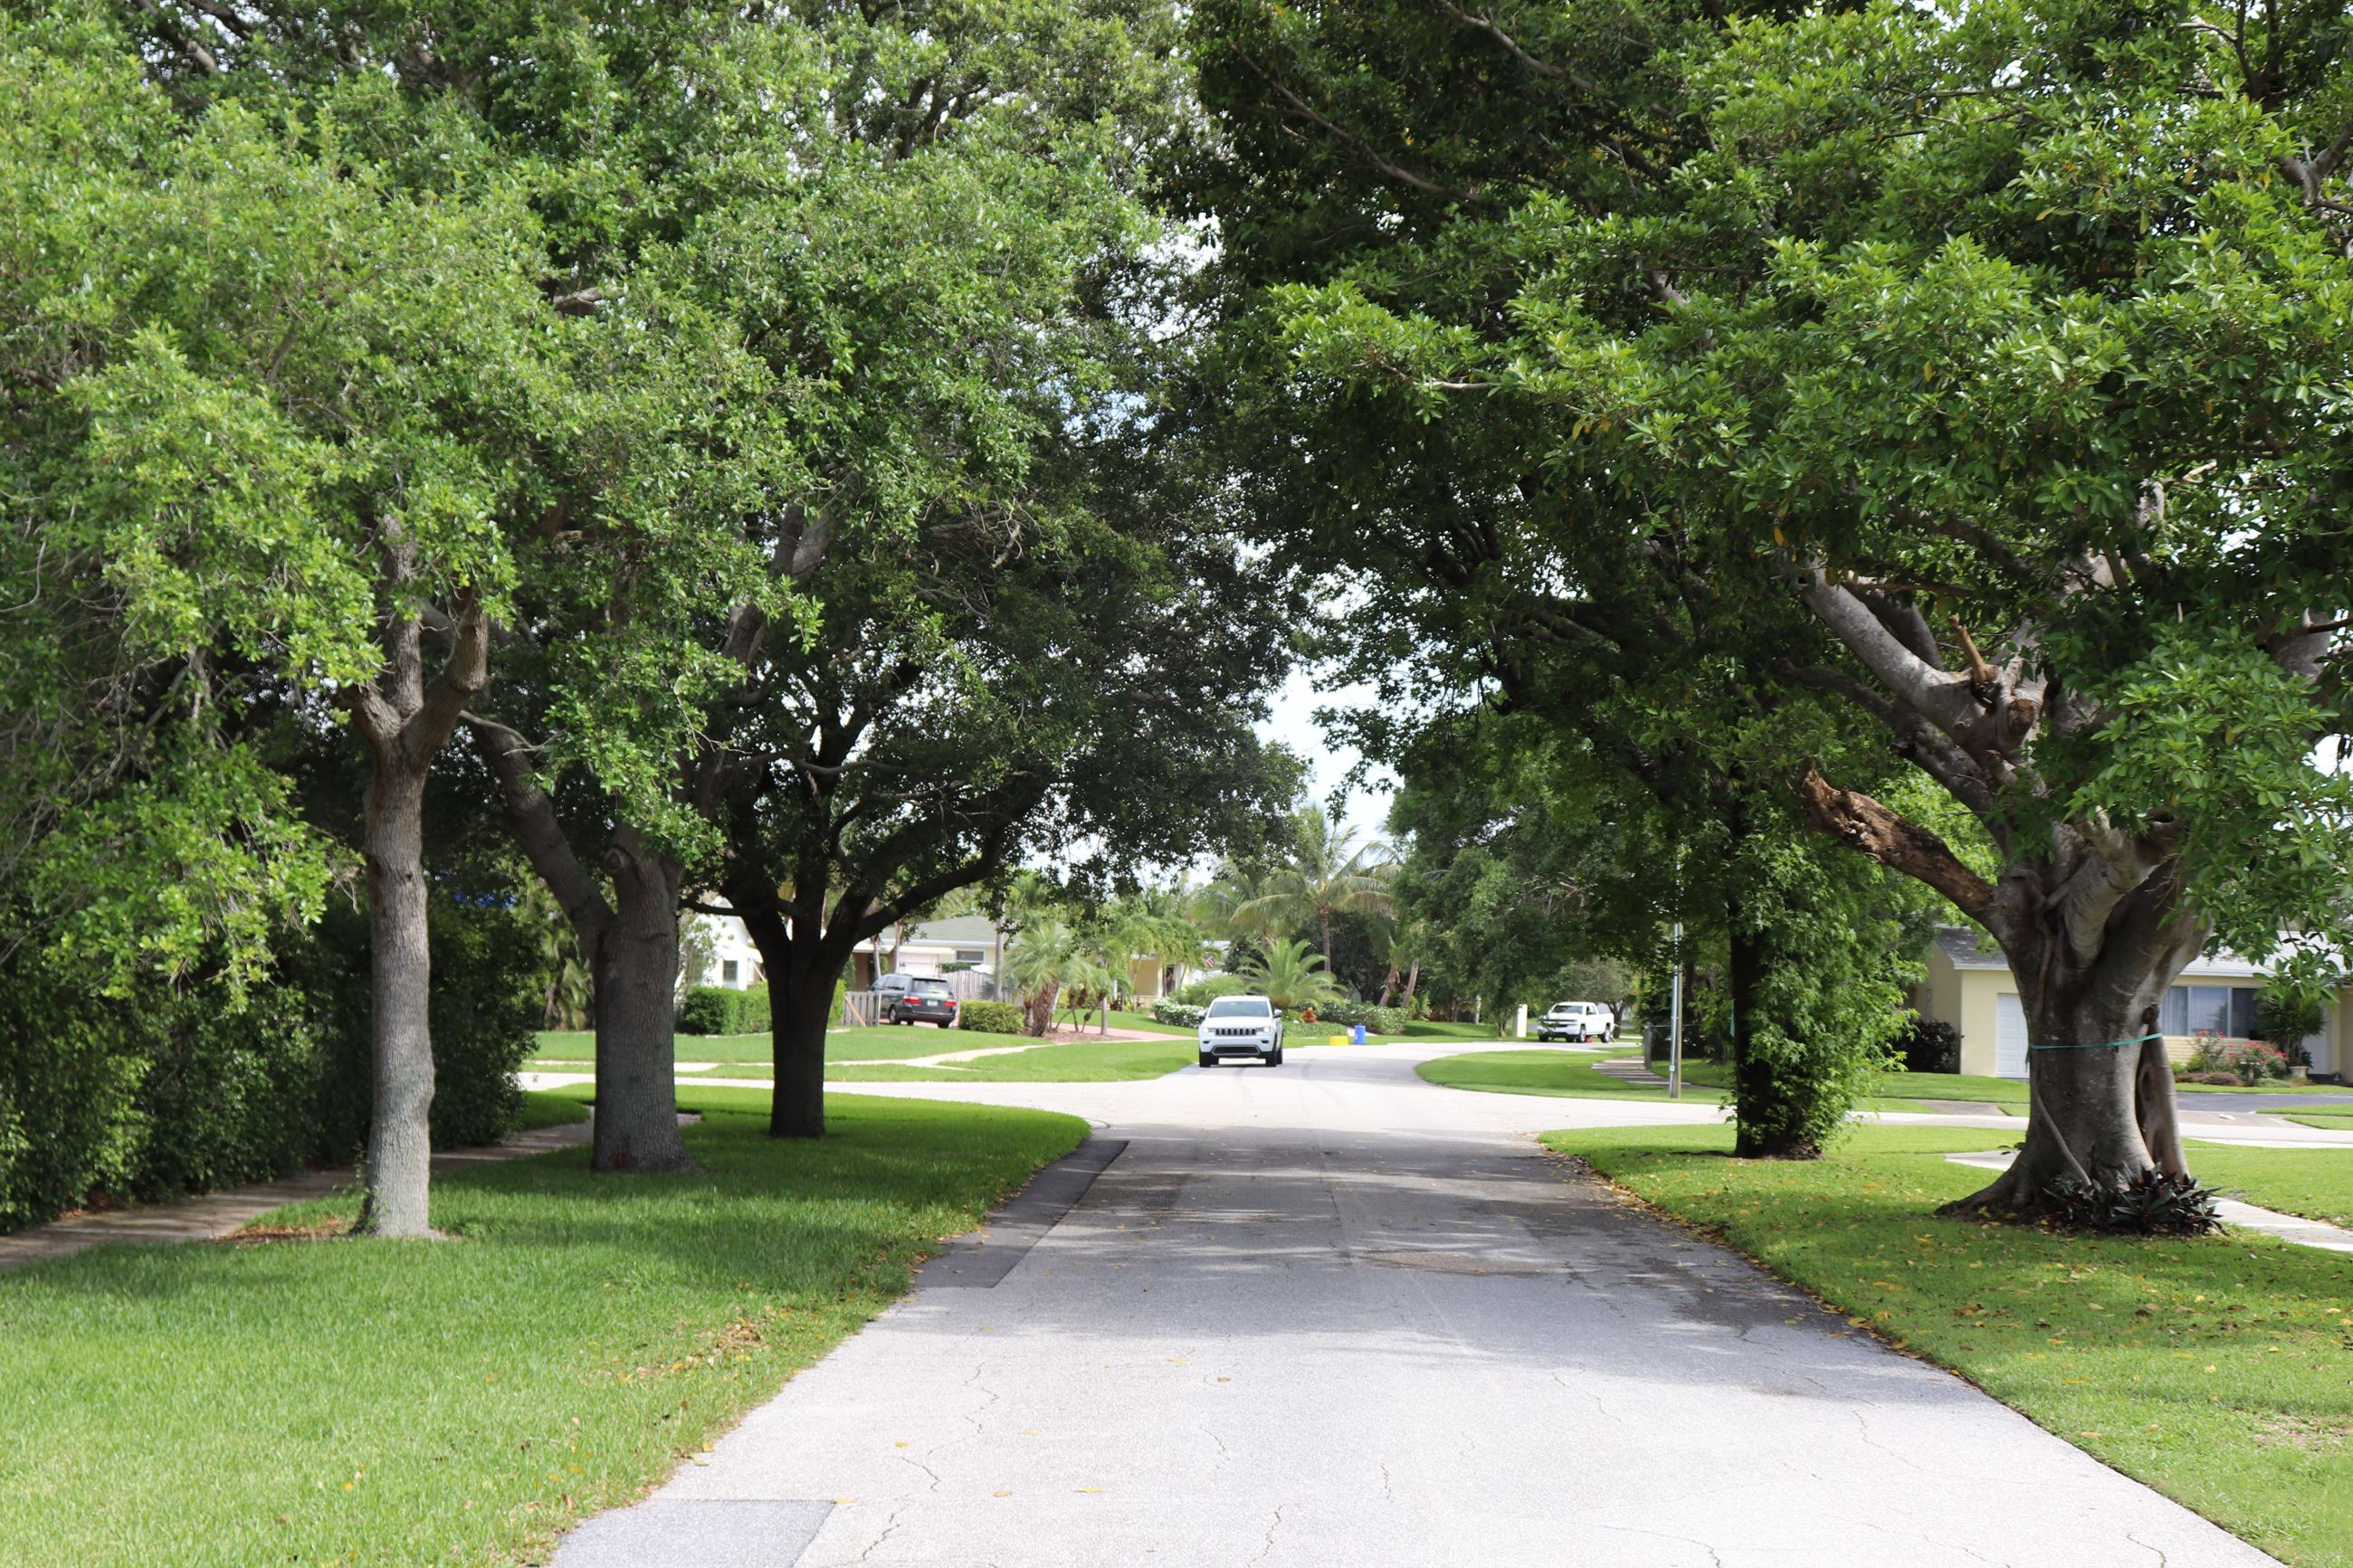 tree canopy over road